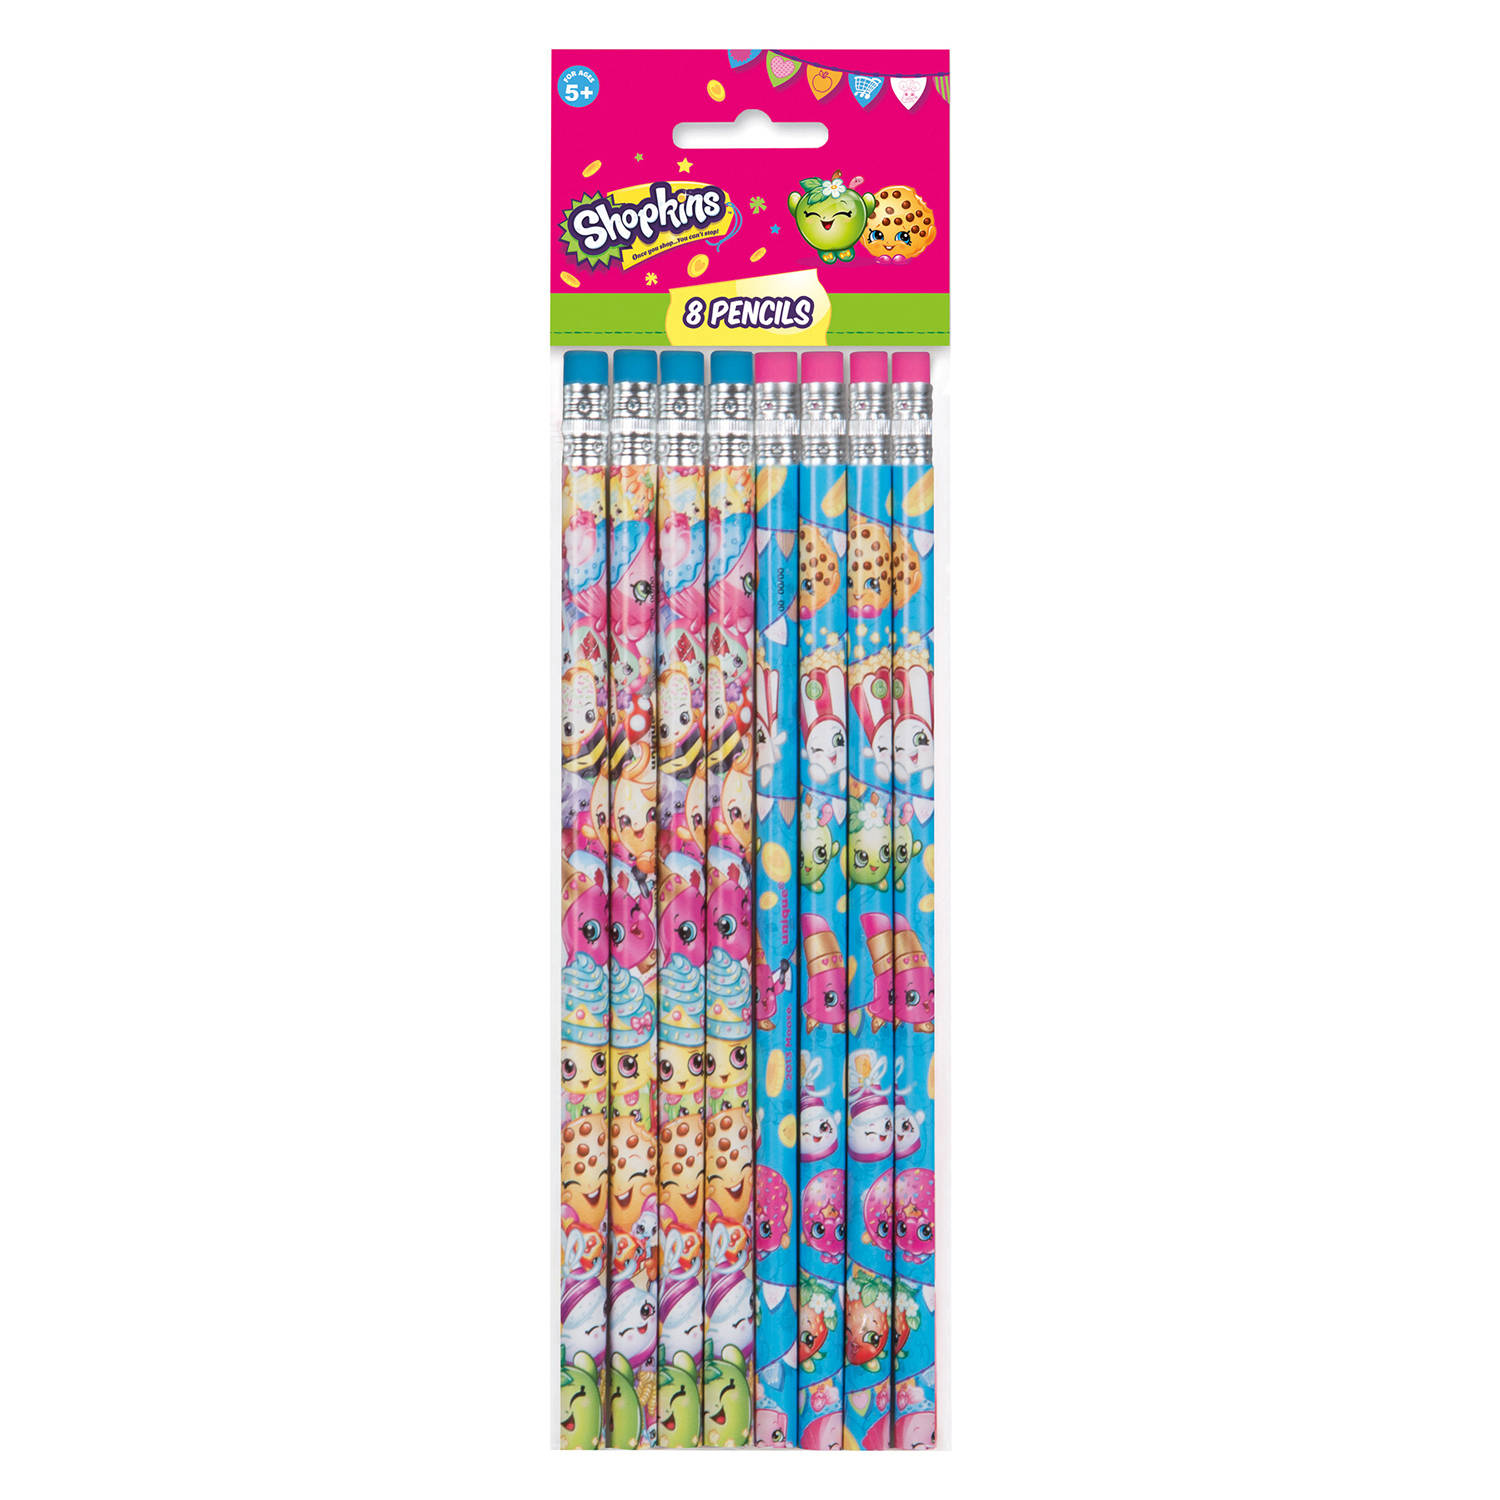 Shopkins Pencils, 8 ct